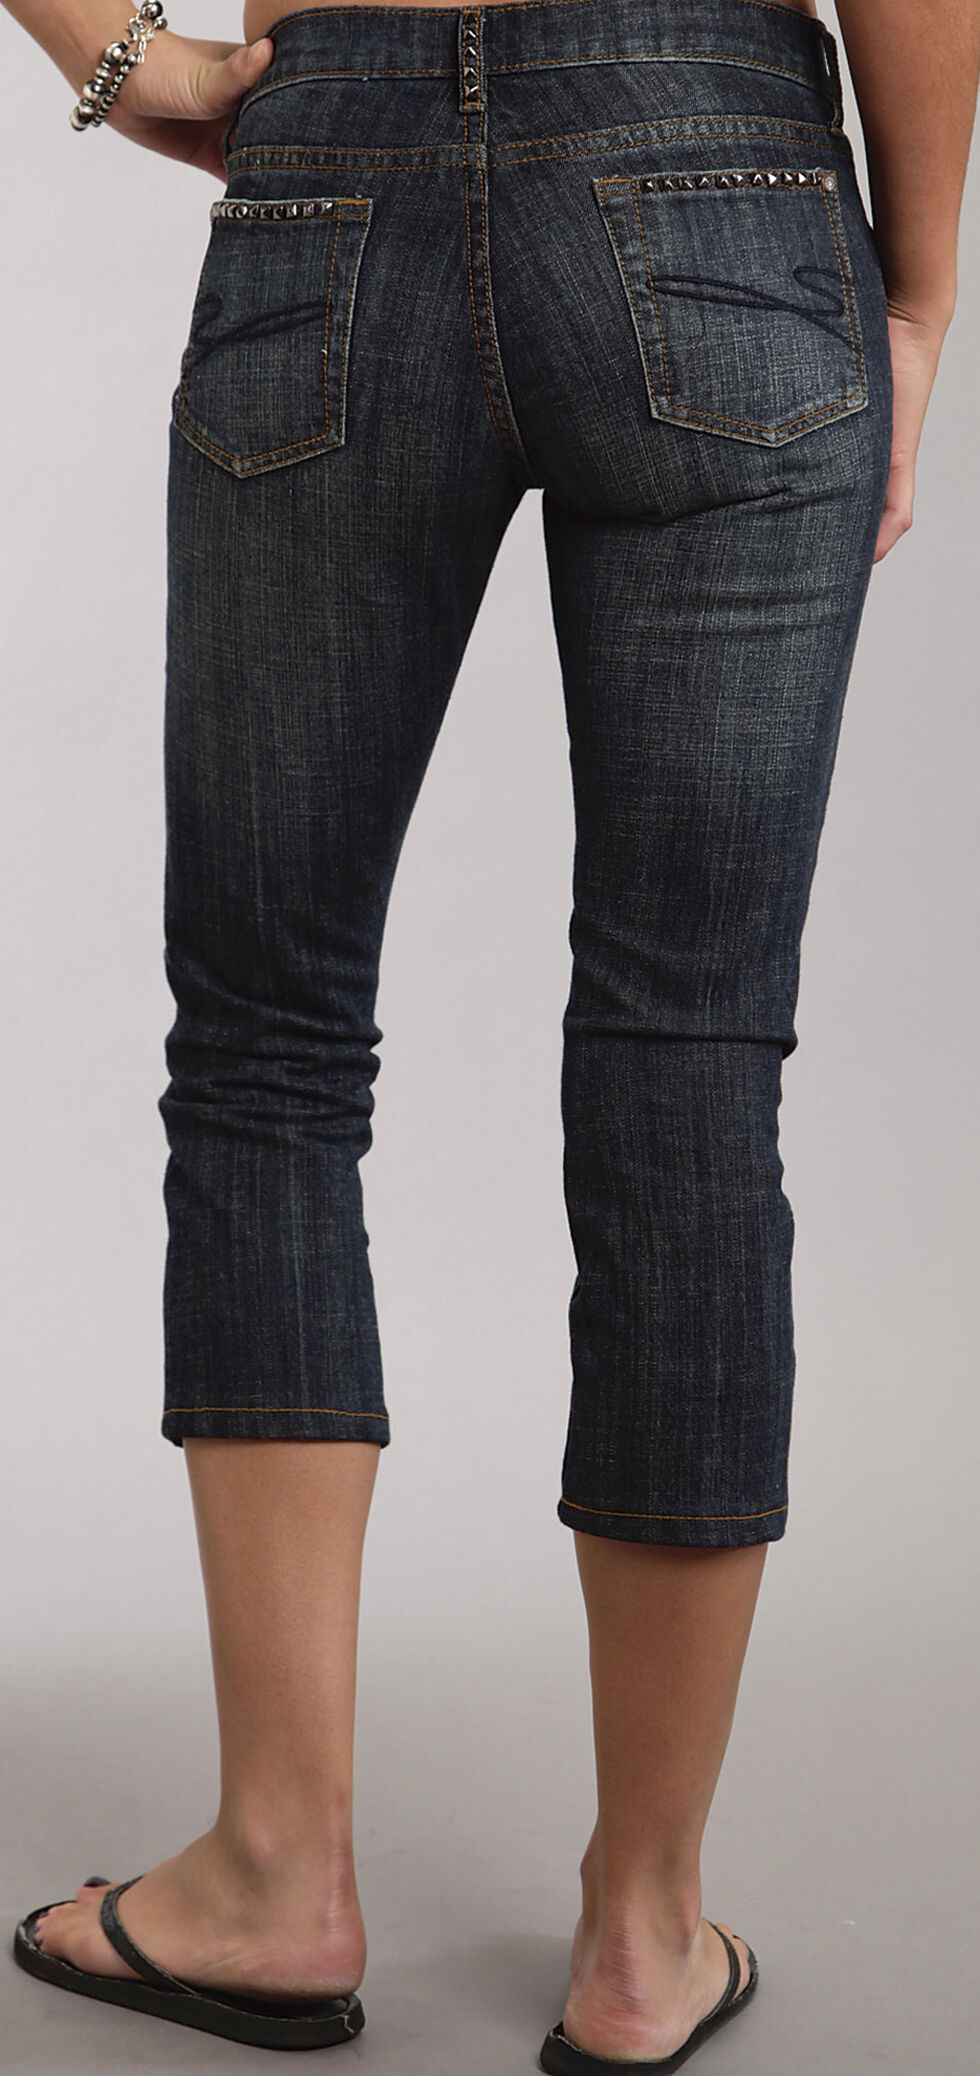 Stetson 541 Stovepipe Cropped Studded Jeans, , hi-res